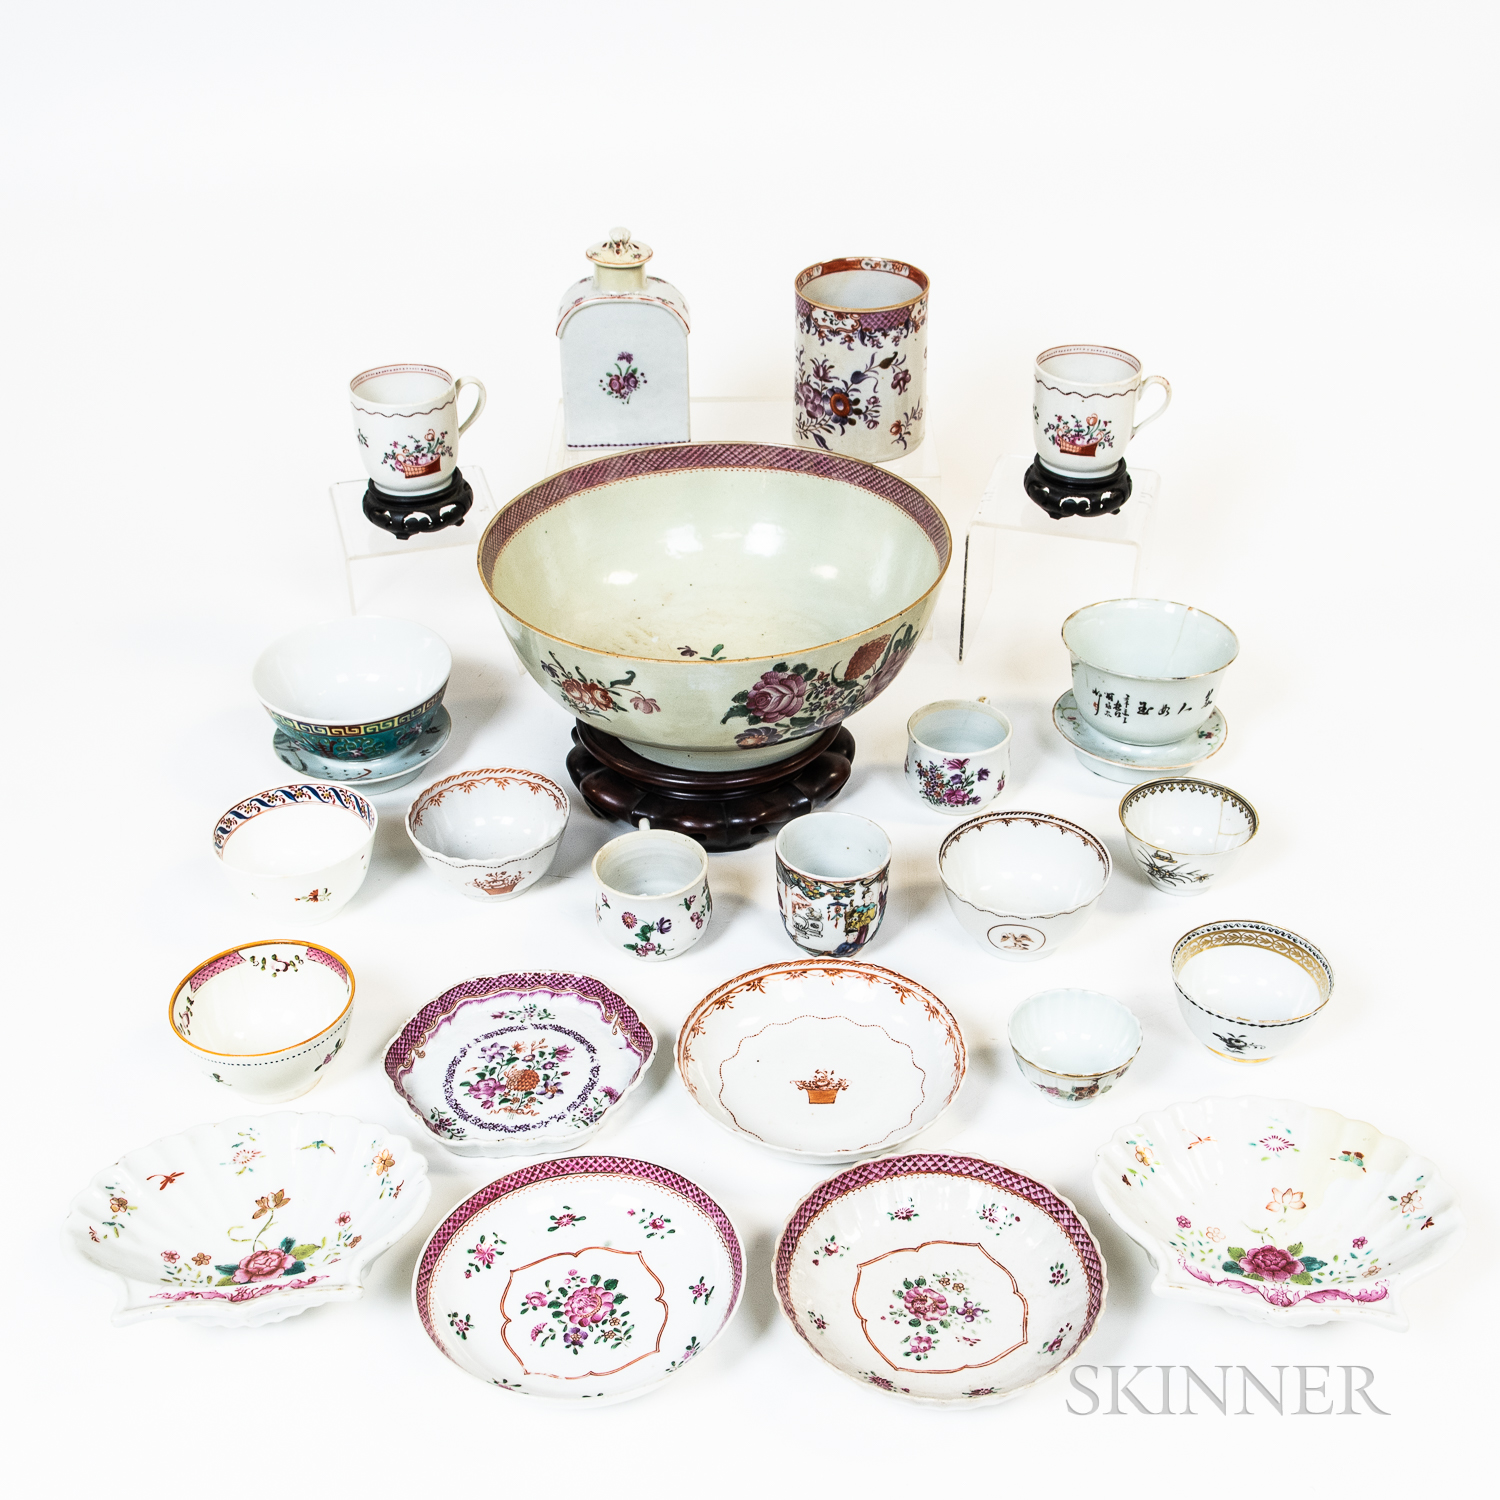 Group of Chinese Export Porcelain Bowls, Cups, Plates, and a Wooden Stand